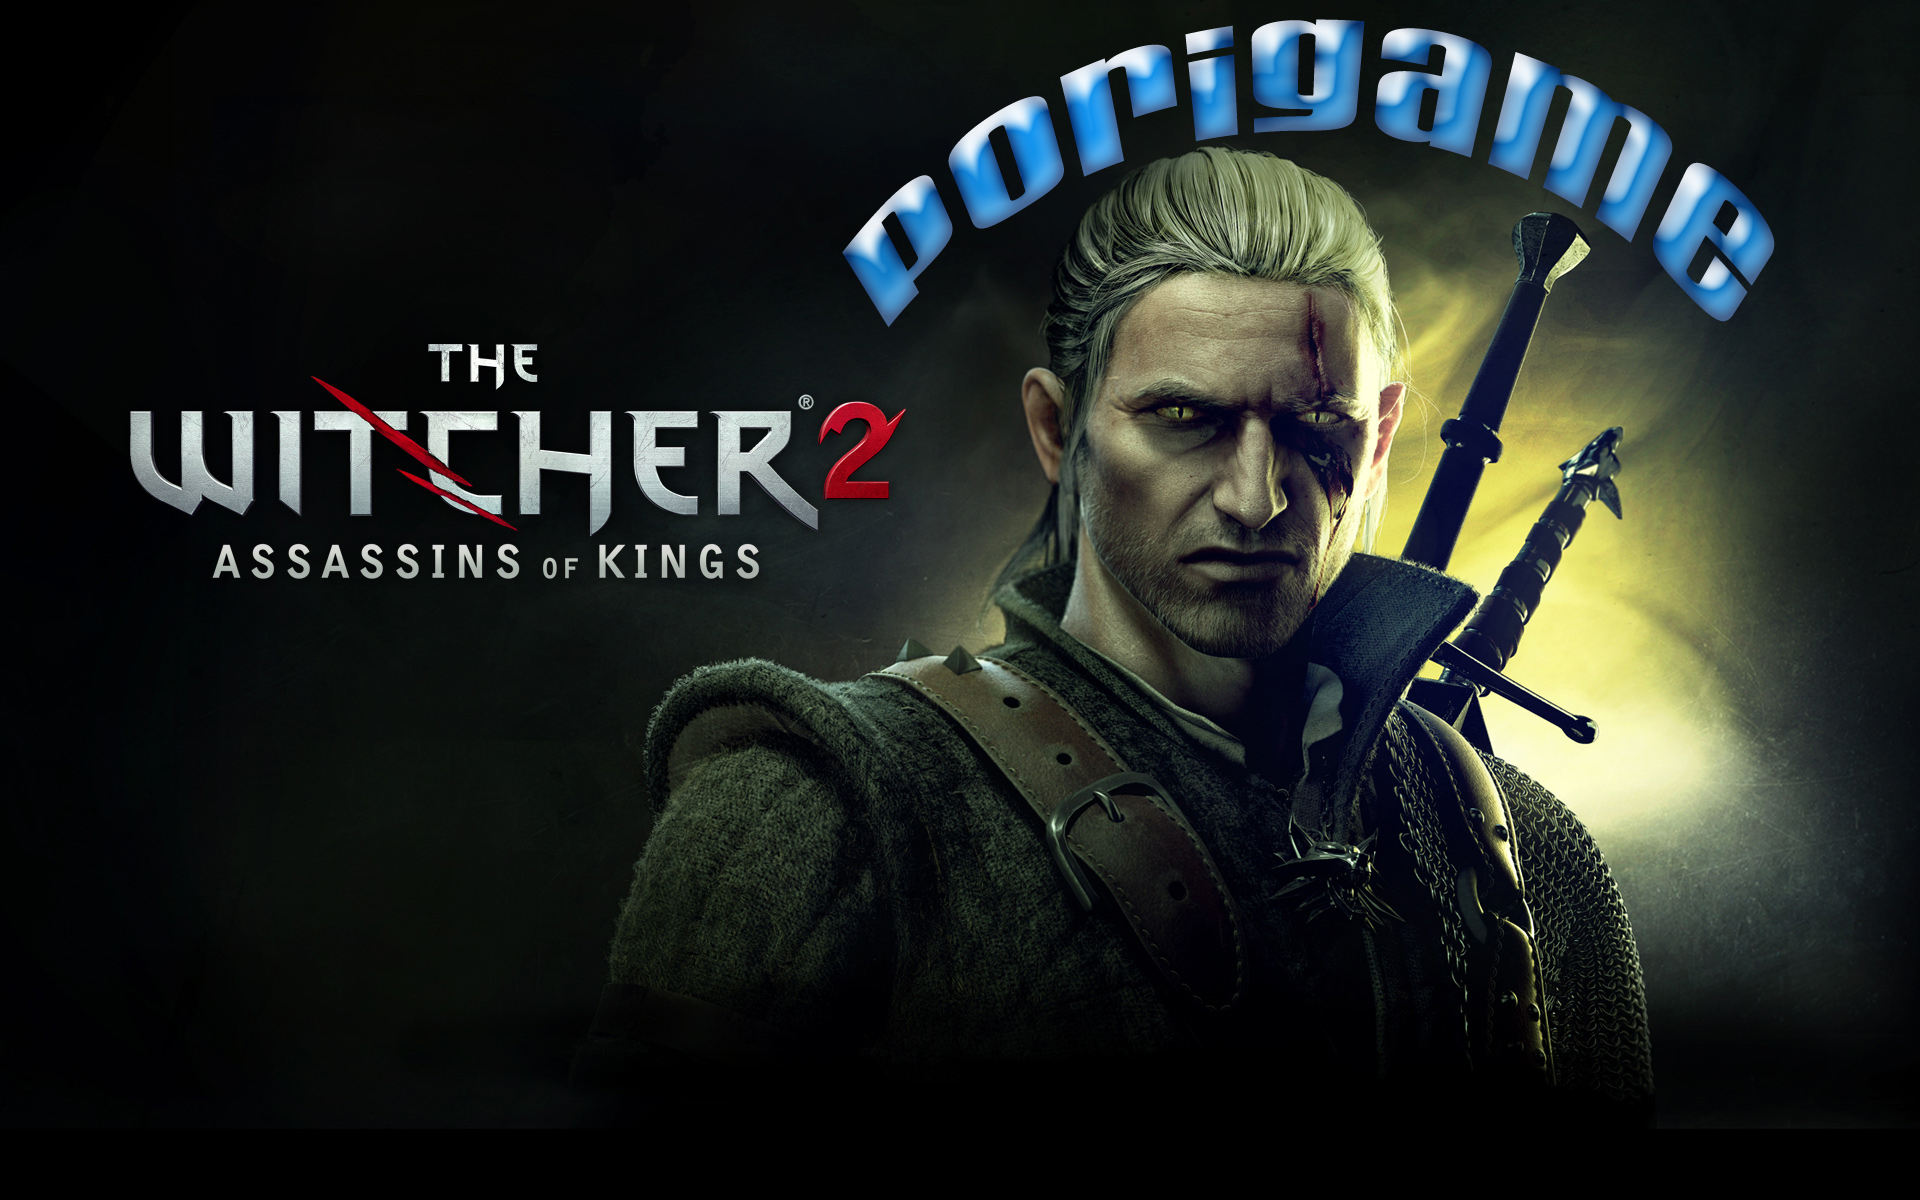 http://s2.picofile.com/file/7119790642/witcher2.jpg